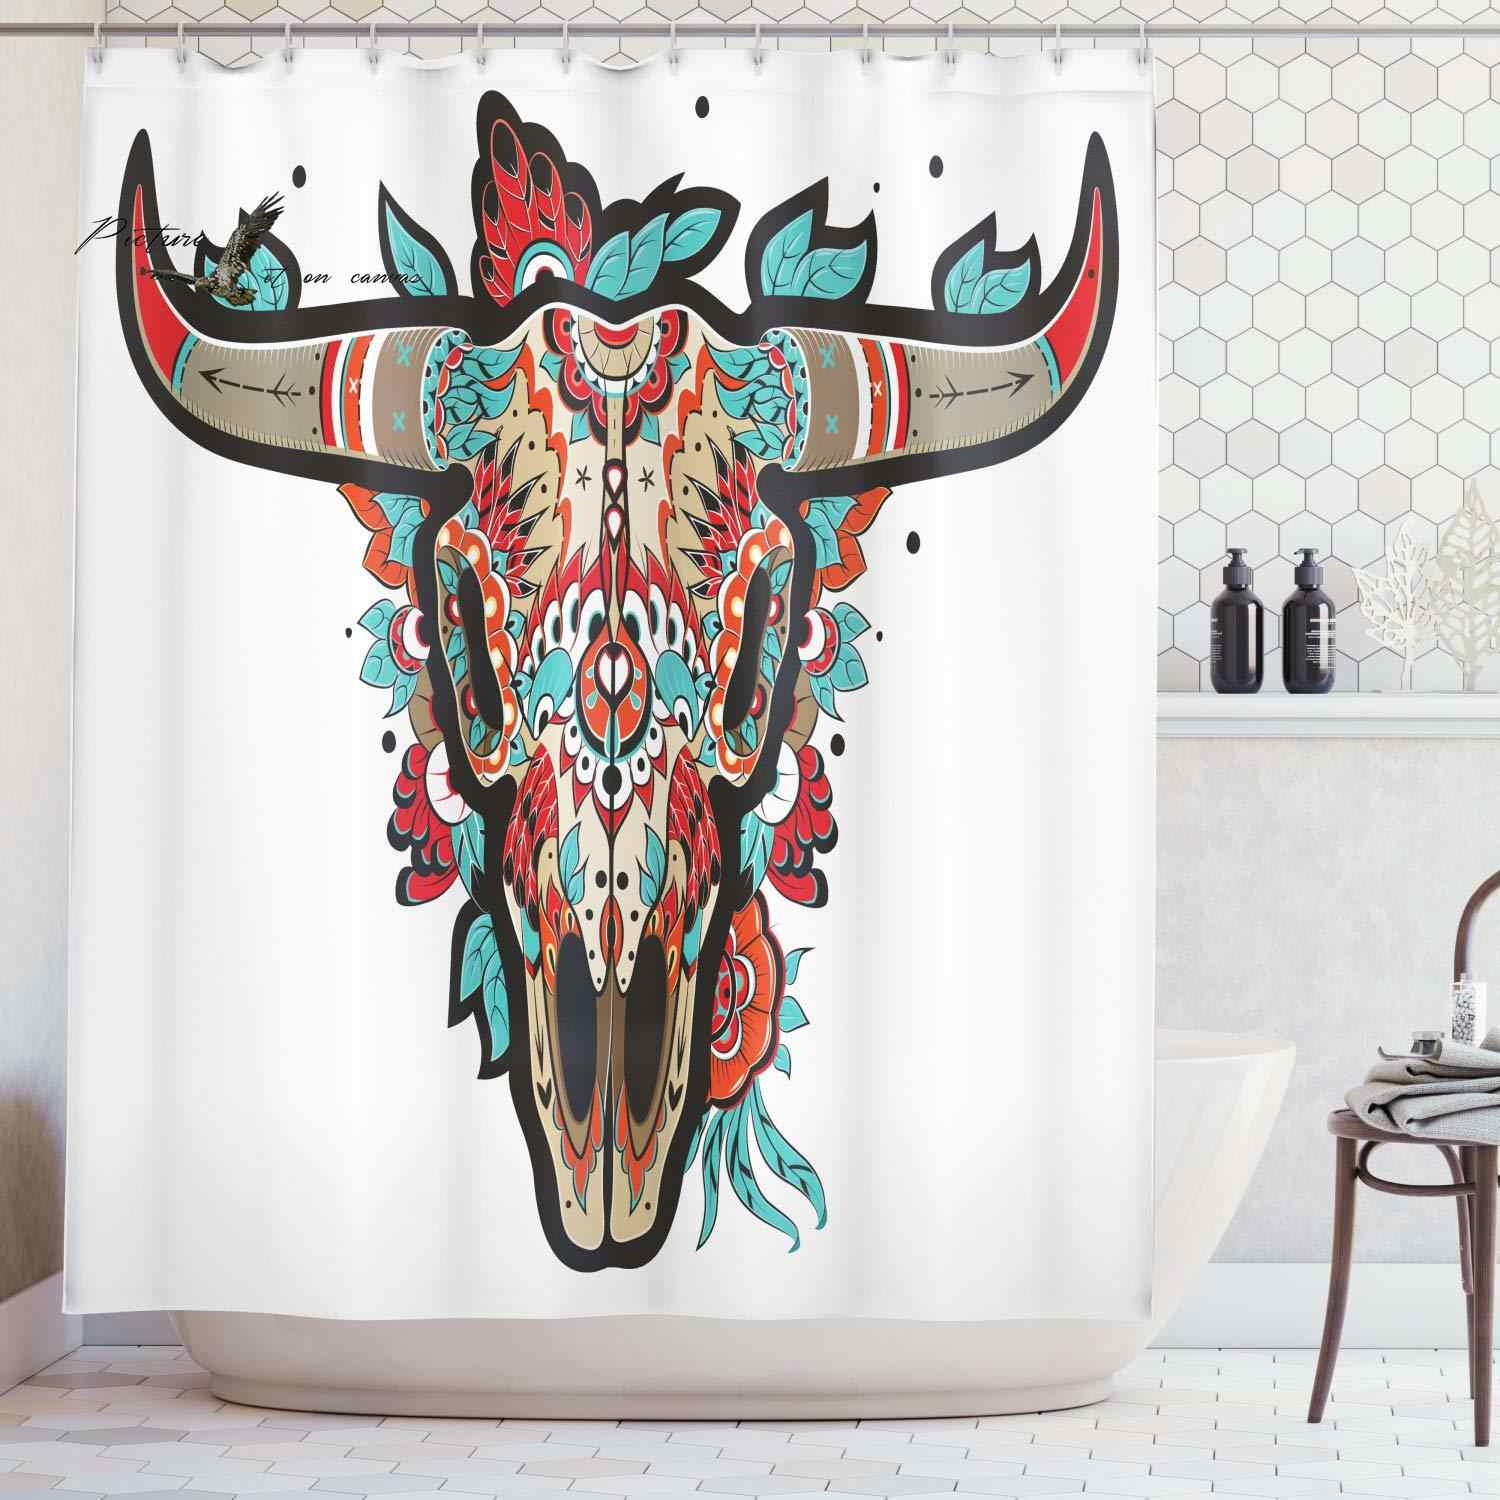 Western Shower Curtain Buffalo Sugar Mexican Skull Colorful Ornate Design Horned Animal Trophy Cloth Fabric Bathroom Decor Set